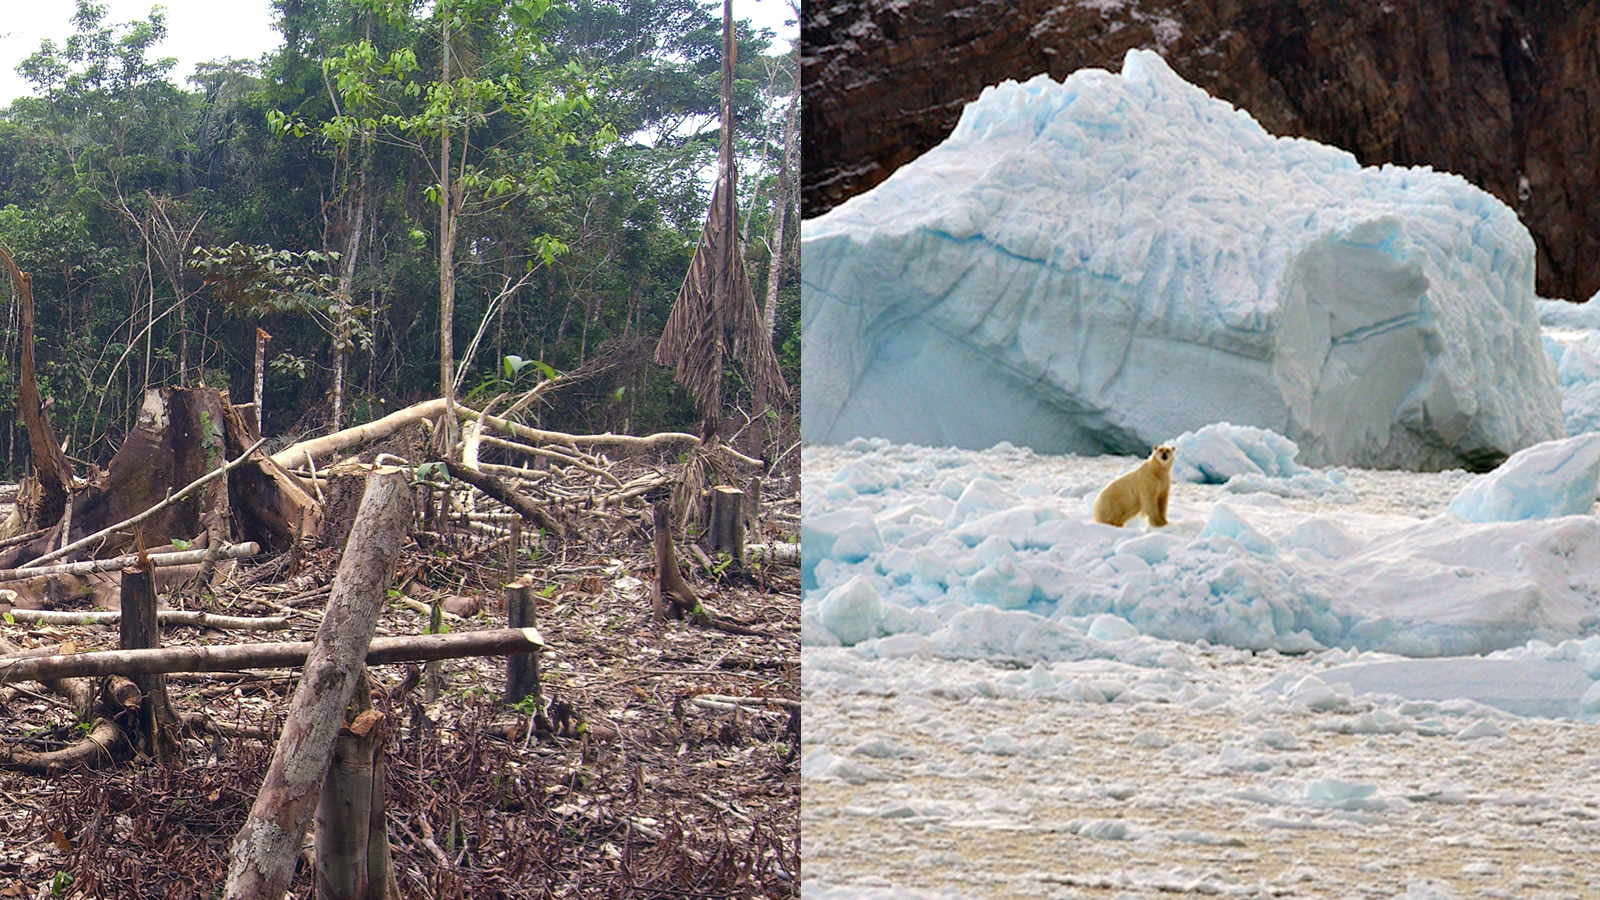 <h4>FORESTS AND GLOBAL WARMING</h4><h5>The Canadian boreal forest, covering more than 1 billion acres, removes enough carbon dioxide each year to offset the emissions of 24 million cars.</h5><em>Matt Zimmerman via Flickr / CC-by-2.0, NASA's Ocean Melting Greenland Mission</em>